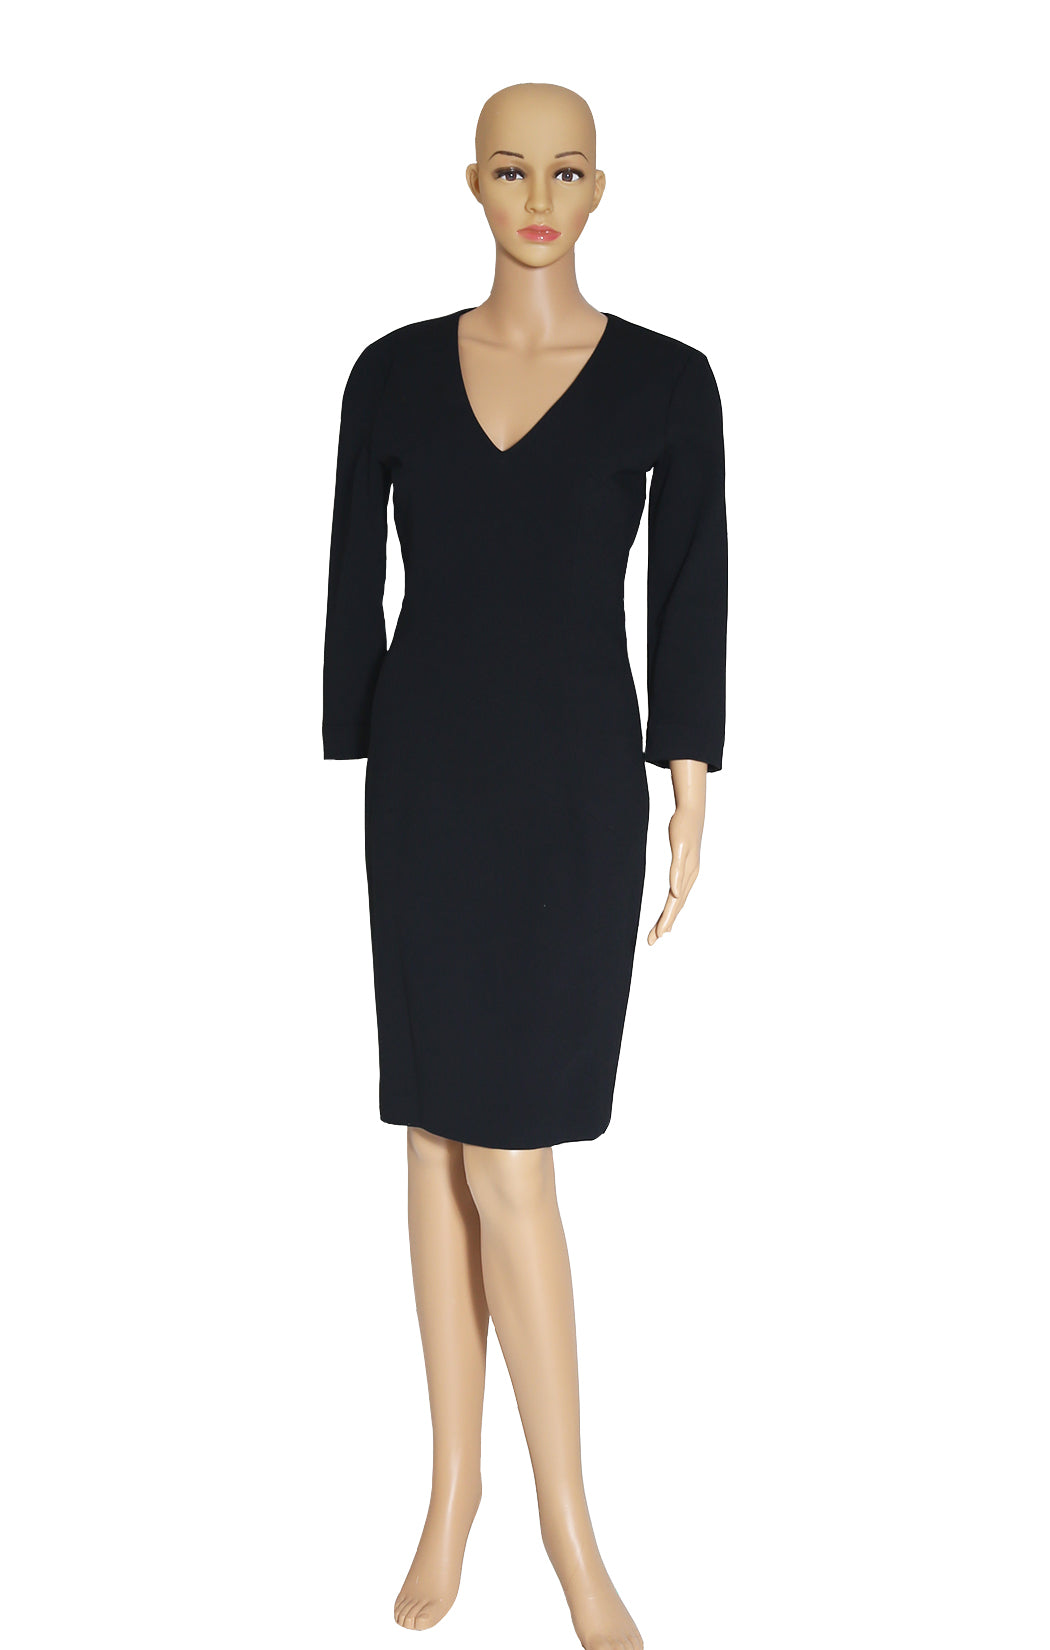 Front view of L'WREN SCOTT  Dress Size: IT 46 (US 10)